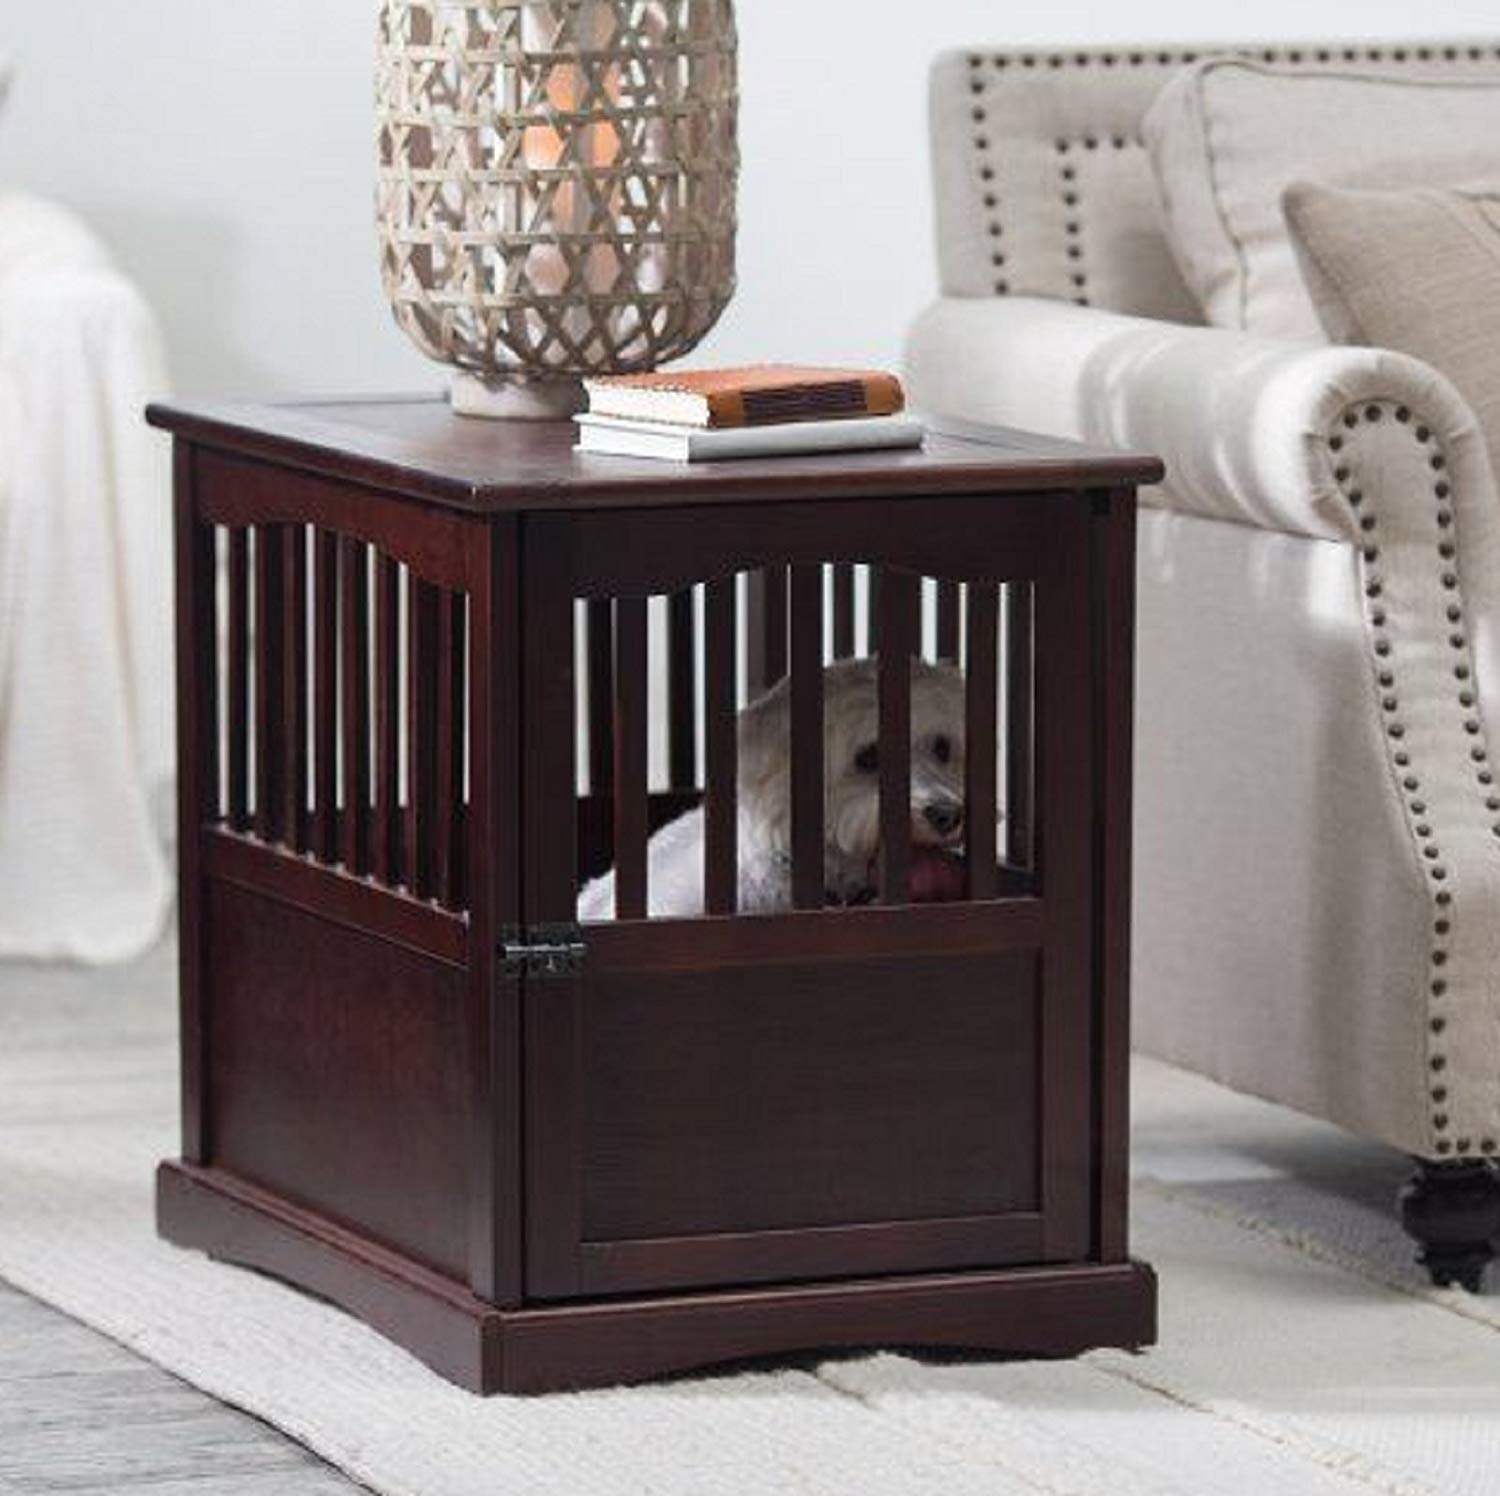 new wooden pet crate end table kennel cage furniture dog small pen indoor house supplies laura ashley dinnerware sets overly fire pit and chairs set pipe frame coffee tan leather